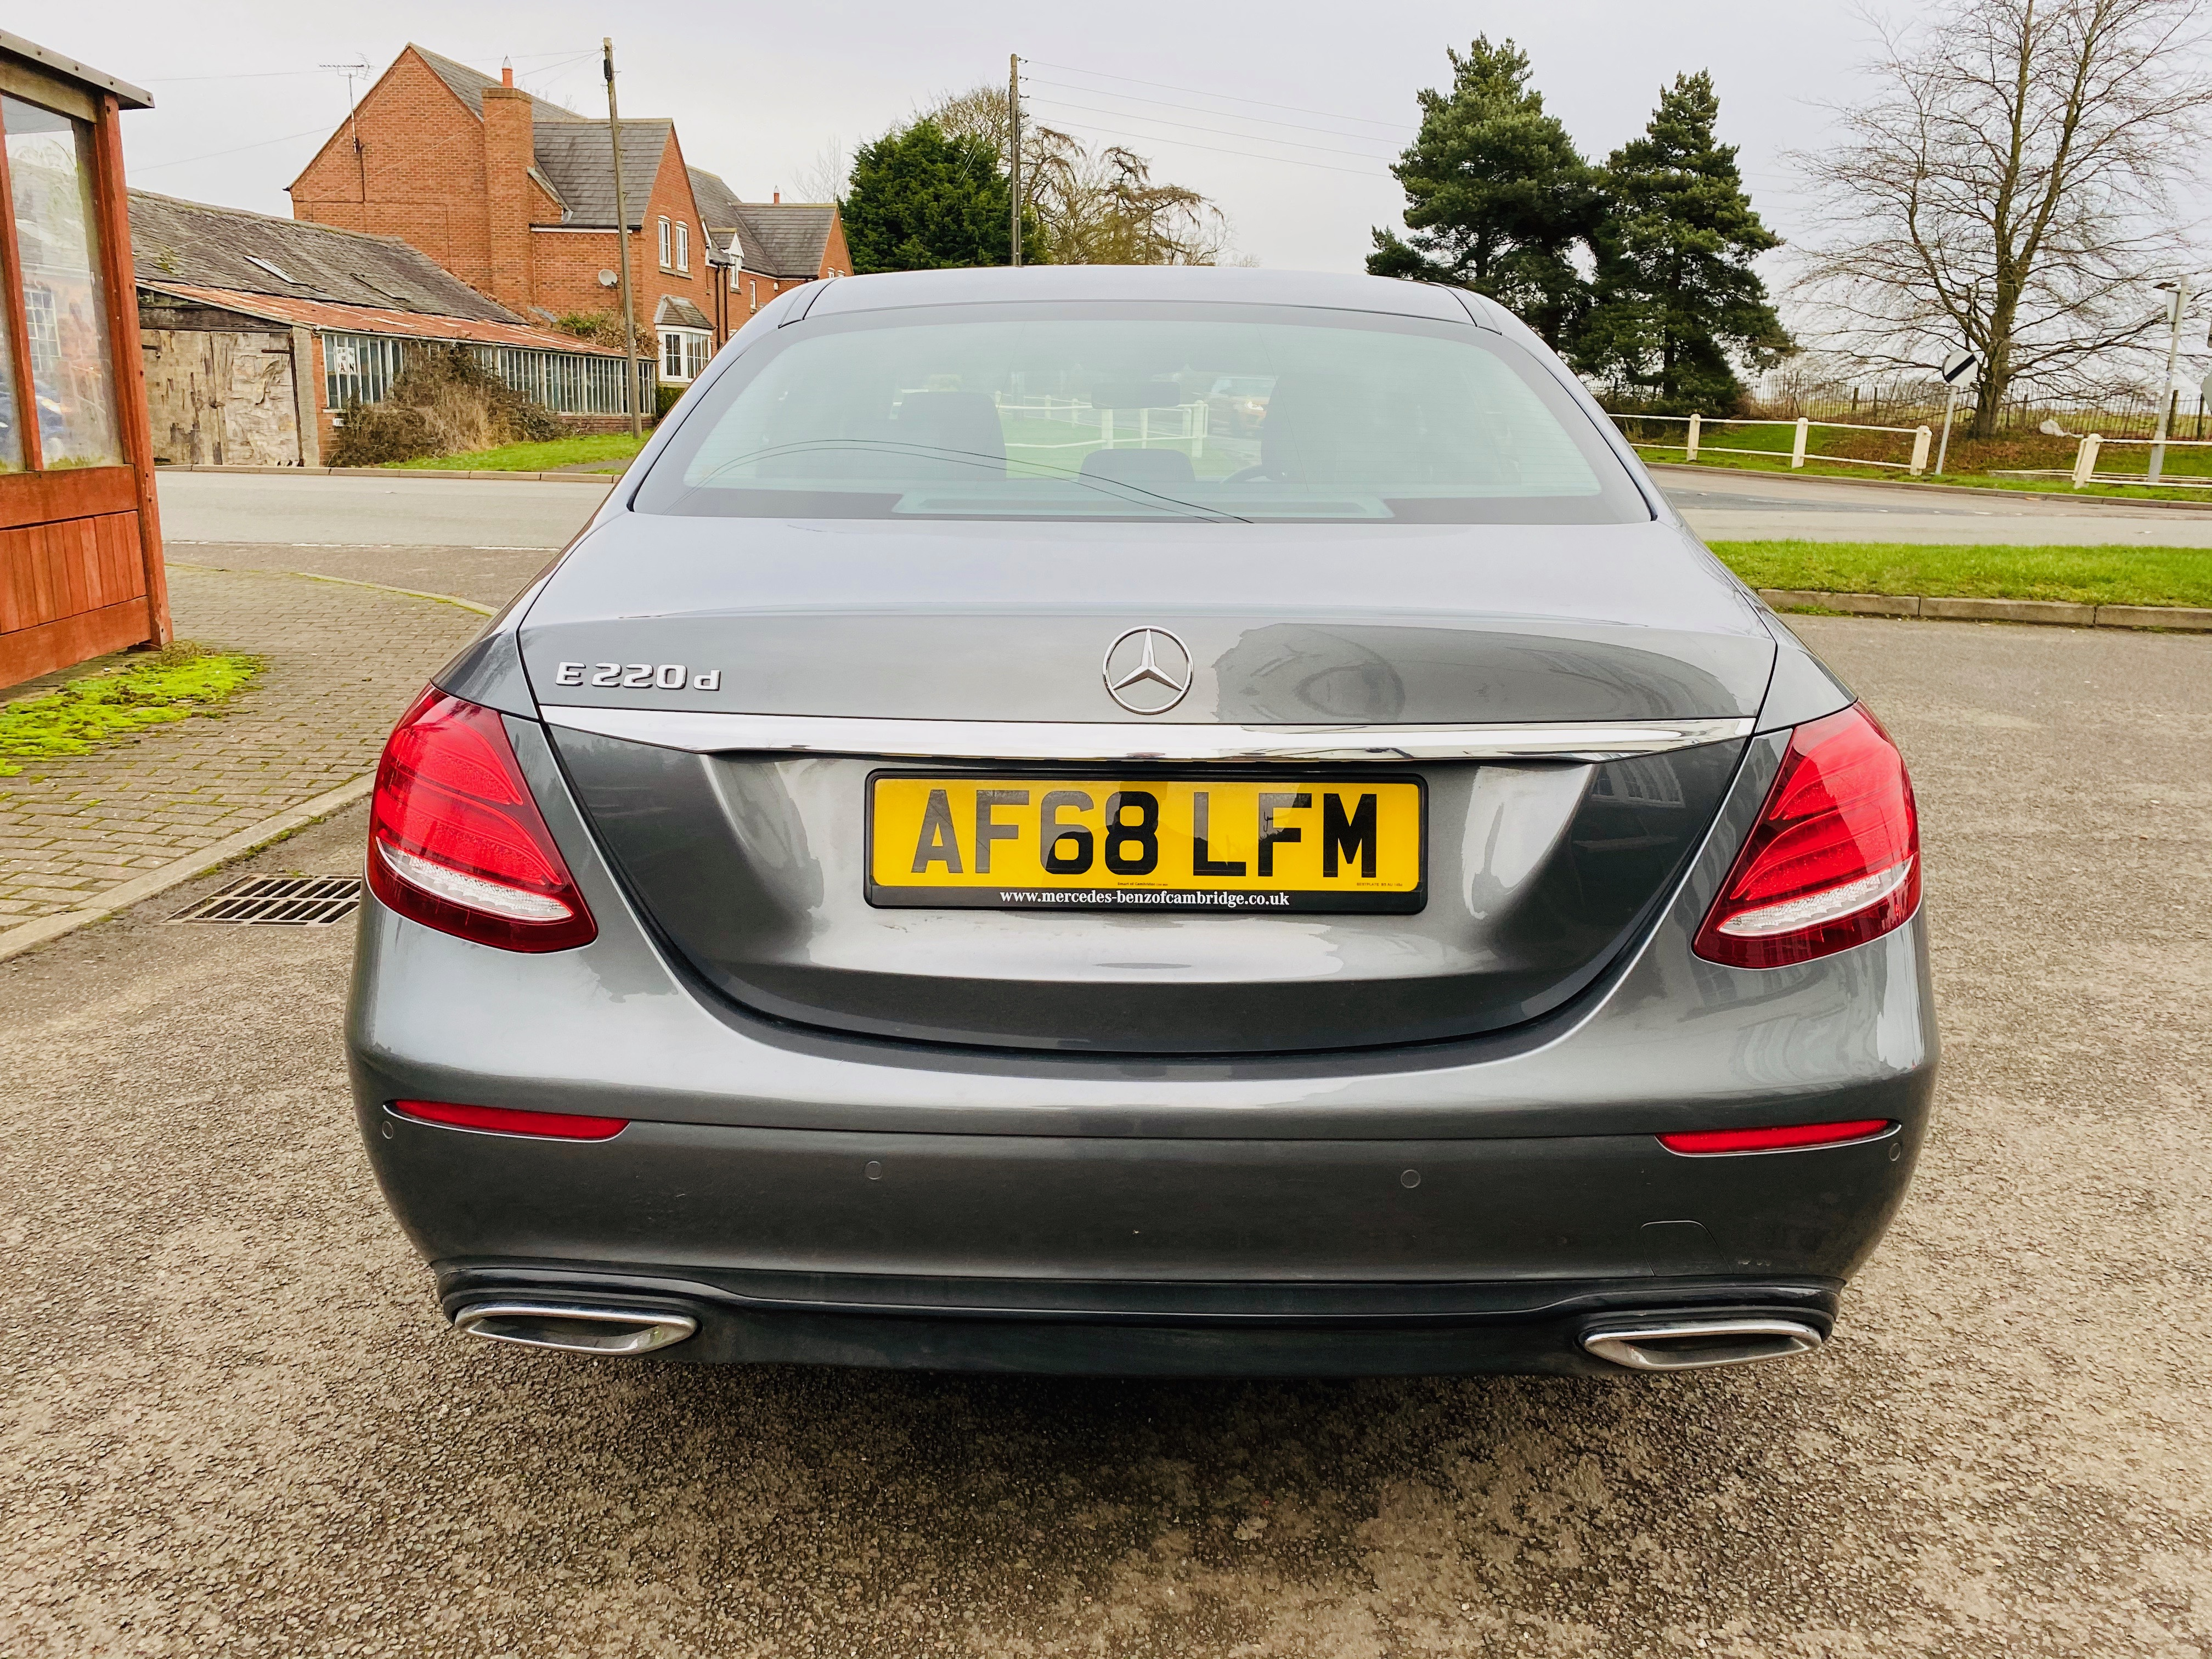 """ON SALE MERCEDES E220d """"SPECIAL EQUIPMENT"""" 9G-TRONIC (2019 MODEL) *GREAT SPEC*SAT NAV - LEATHER - Image 5 of 26"""